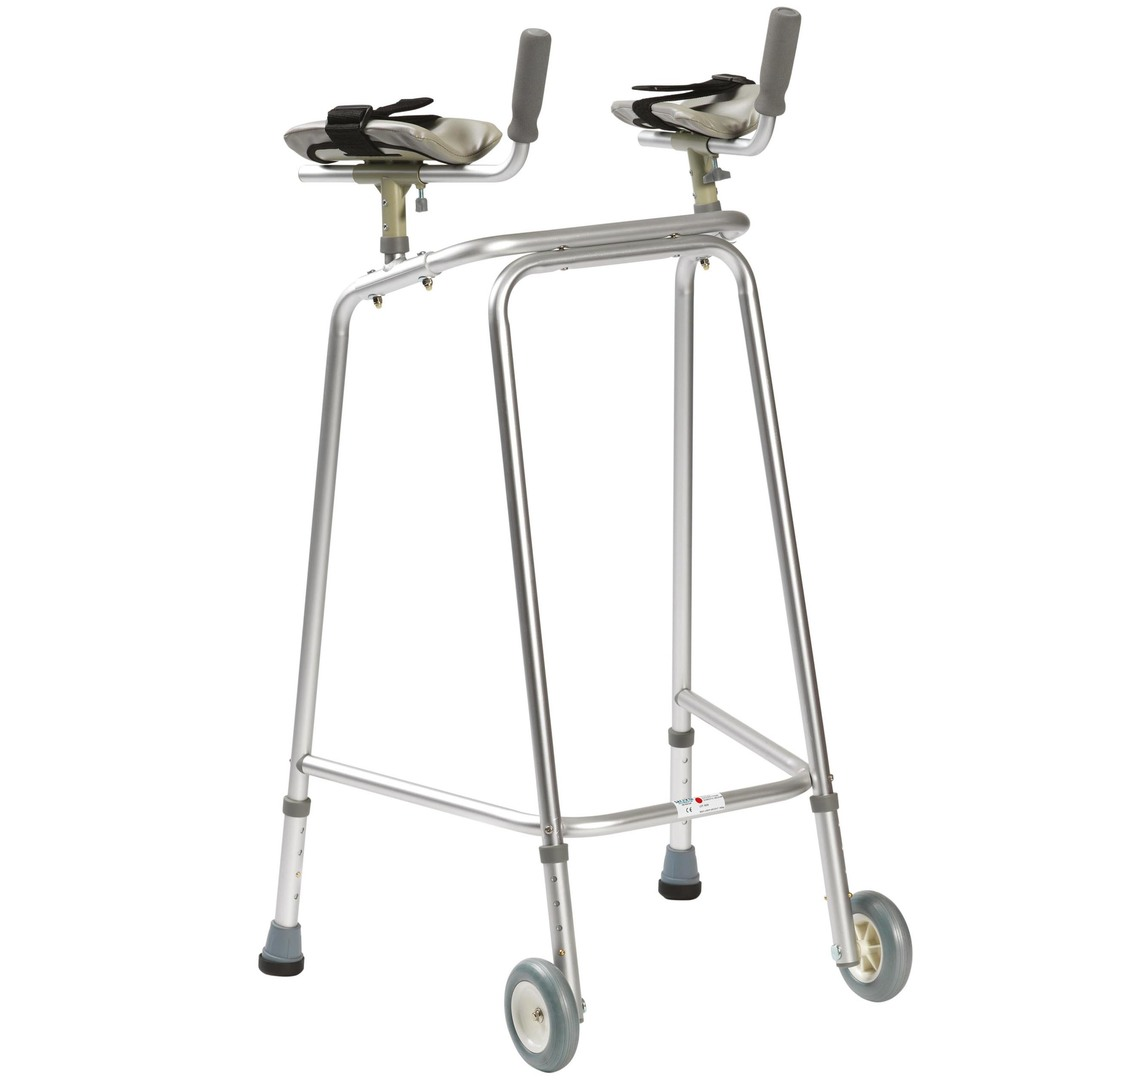 Rigid Walker With Wheels & Forearms   Medical Supermarket